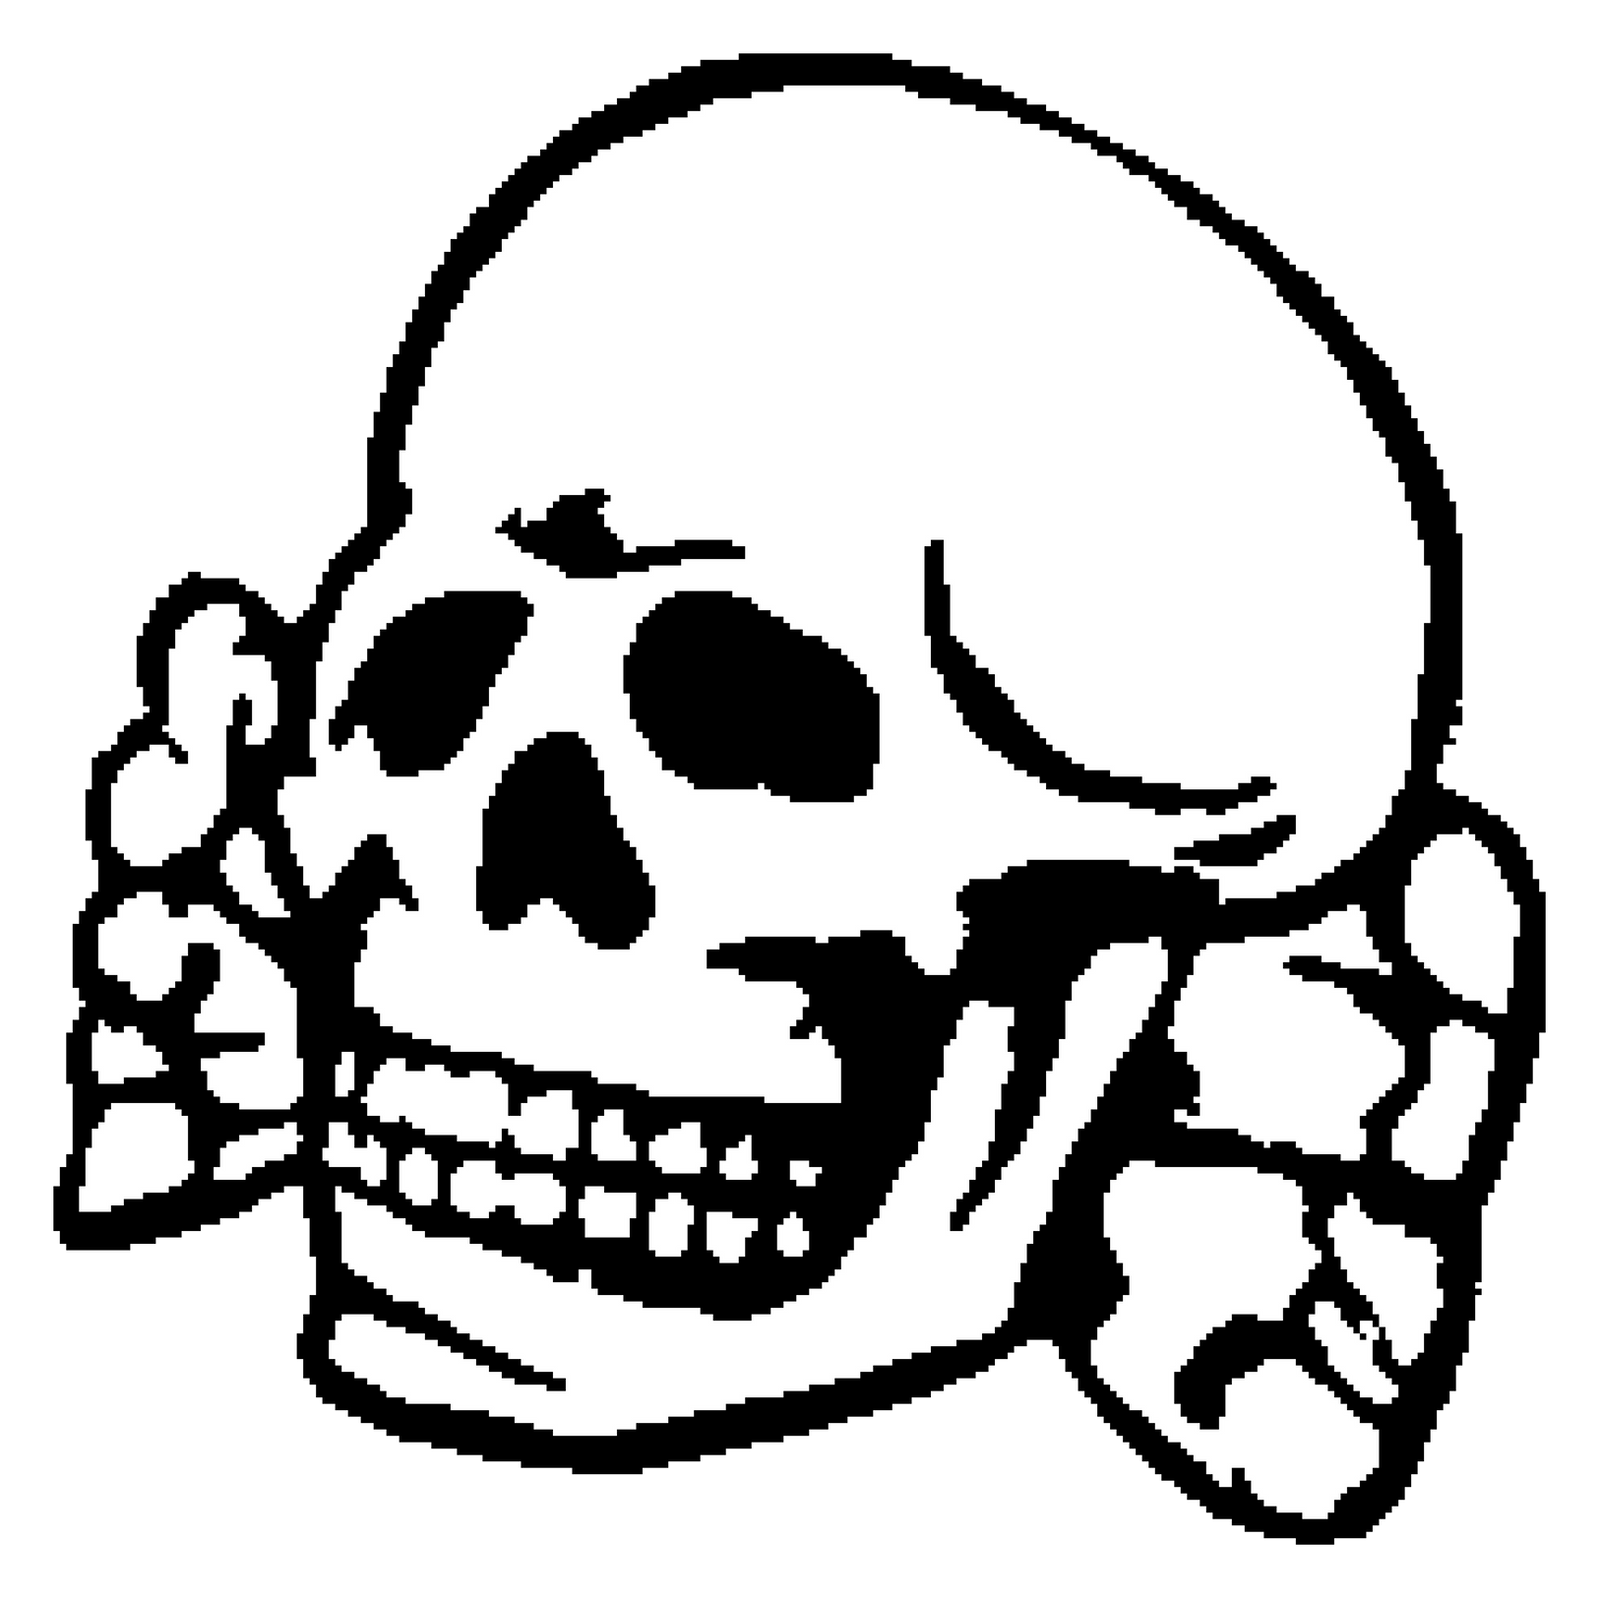 VECTOR 8bit SS Totenkopf 432571159 furthermore Pizza Black And White as well Collection also ment Dessiner Une Citrouille together with Oh Algebra 2 273834499. on scary cartoon of